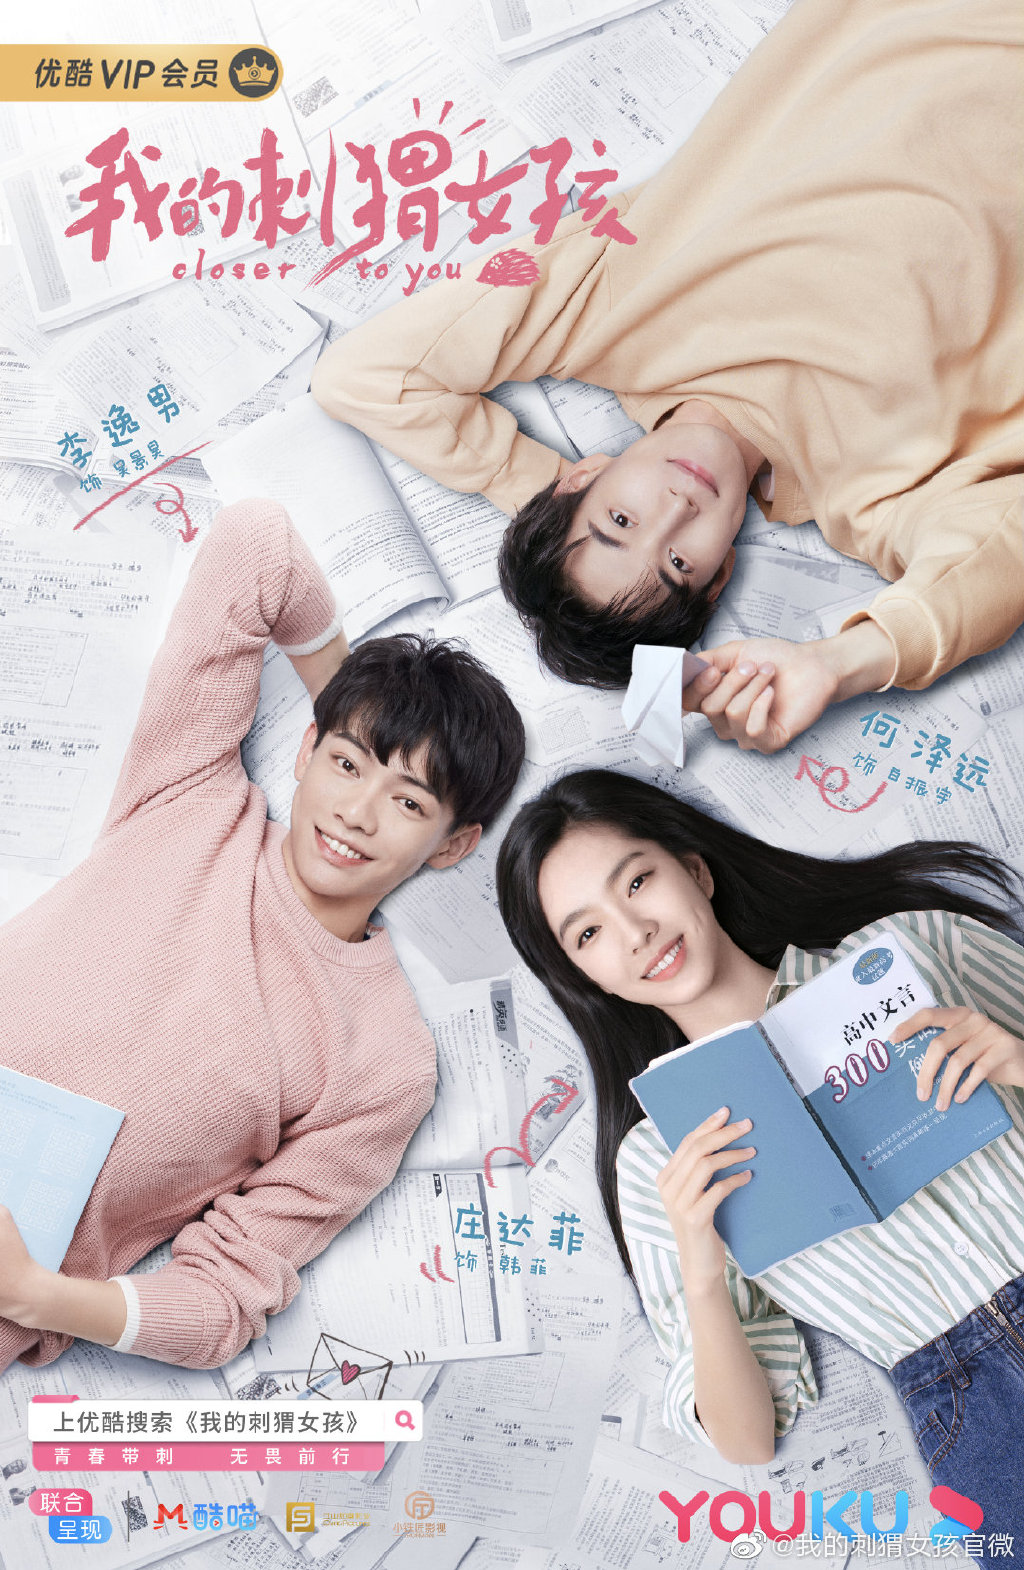 Closer To You Drama Poster